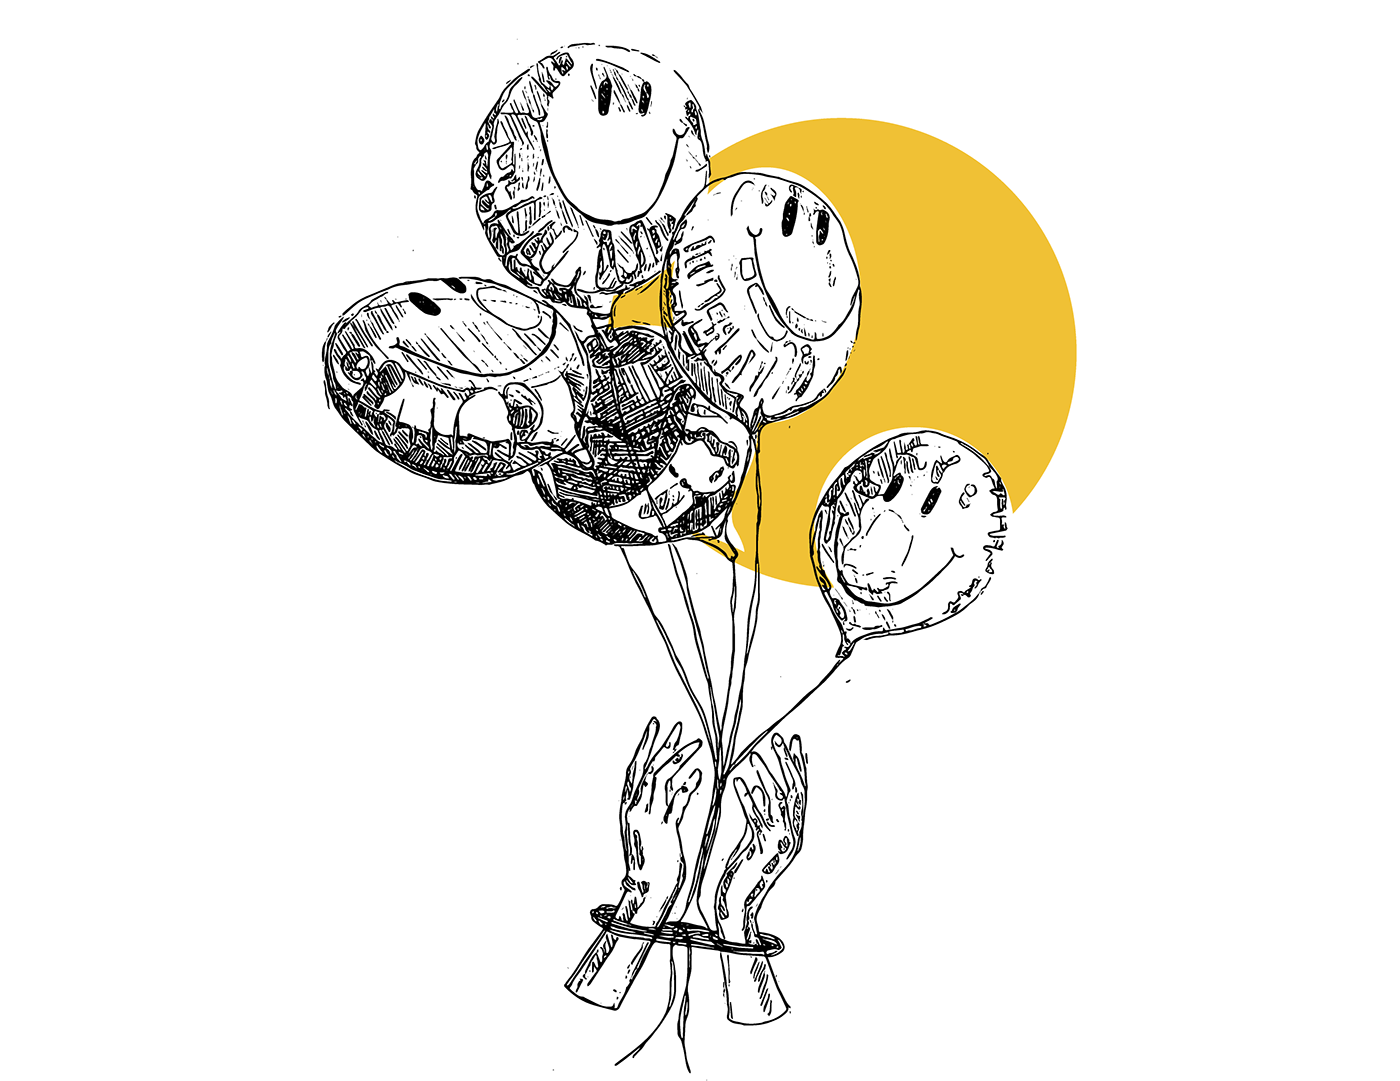 Hands being carried away by smiley face balloons